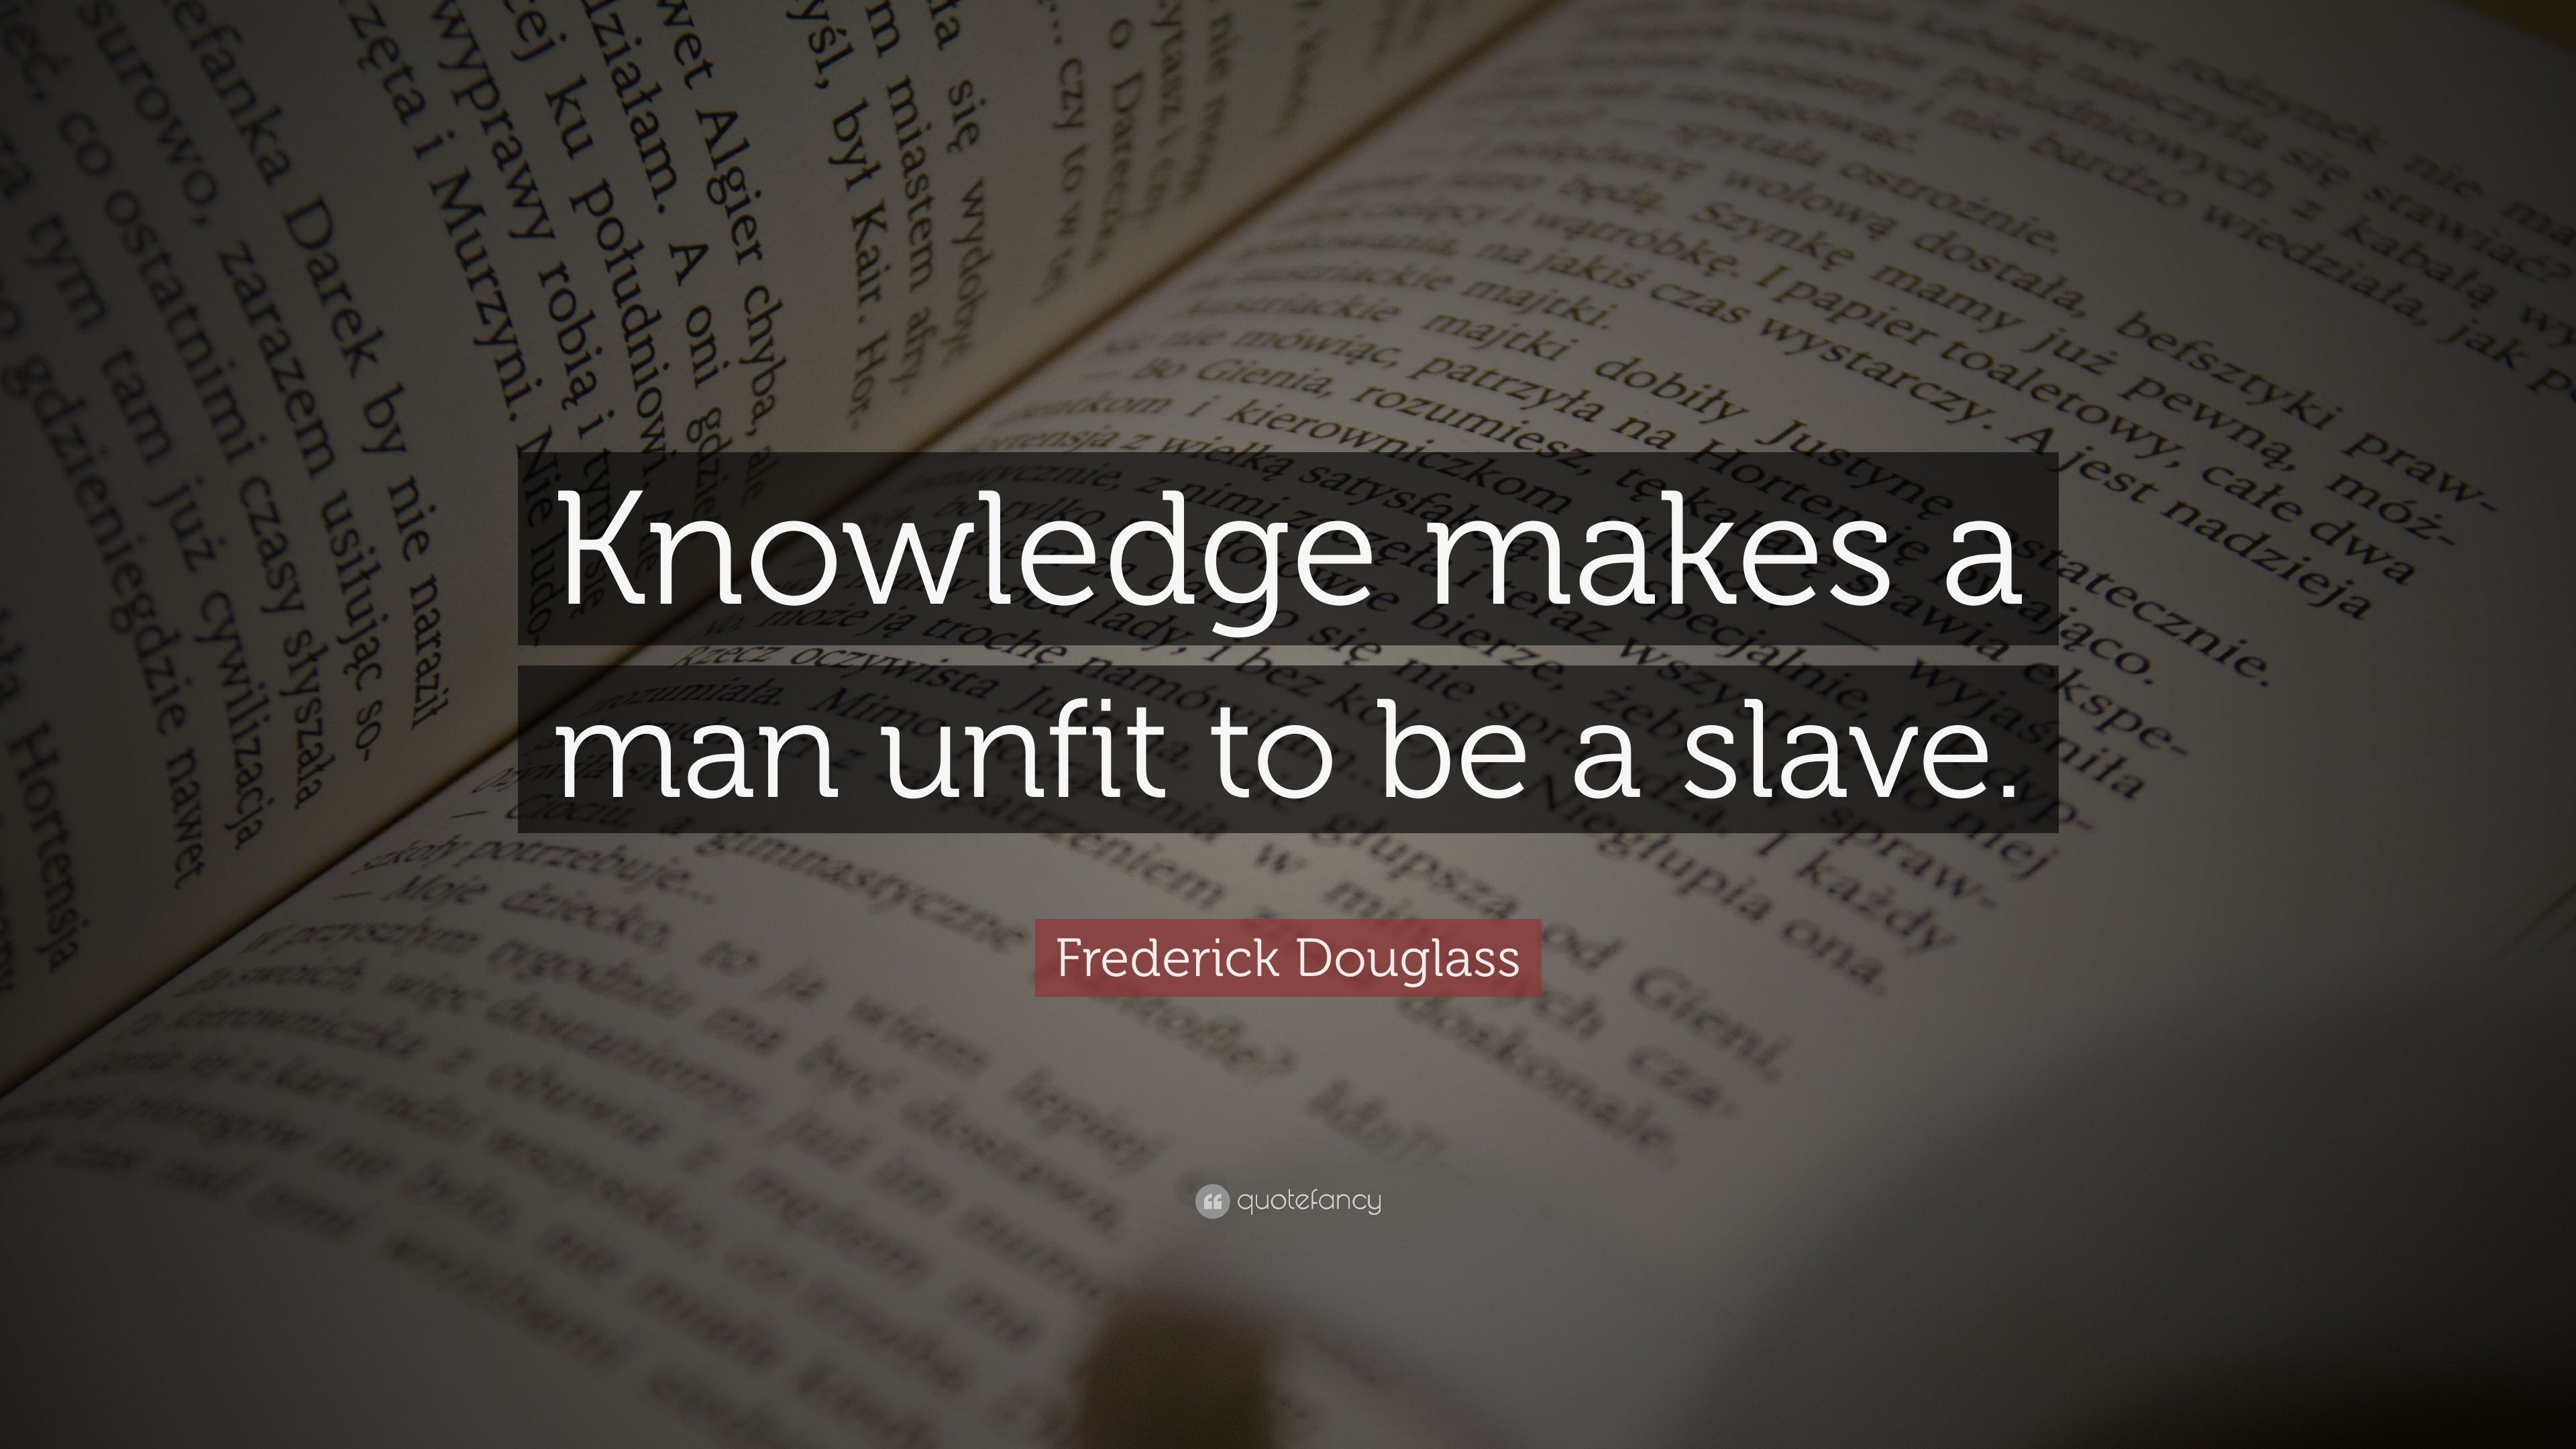 In honor of the start of Black History Month and his birth (Feb 1818) and death (February 20, 1895), here's a quote from Frederick Douglass.